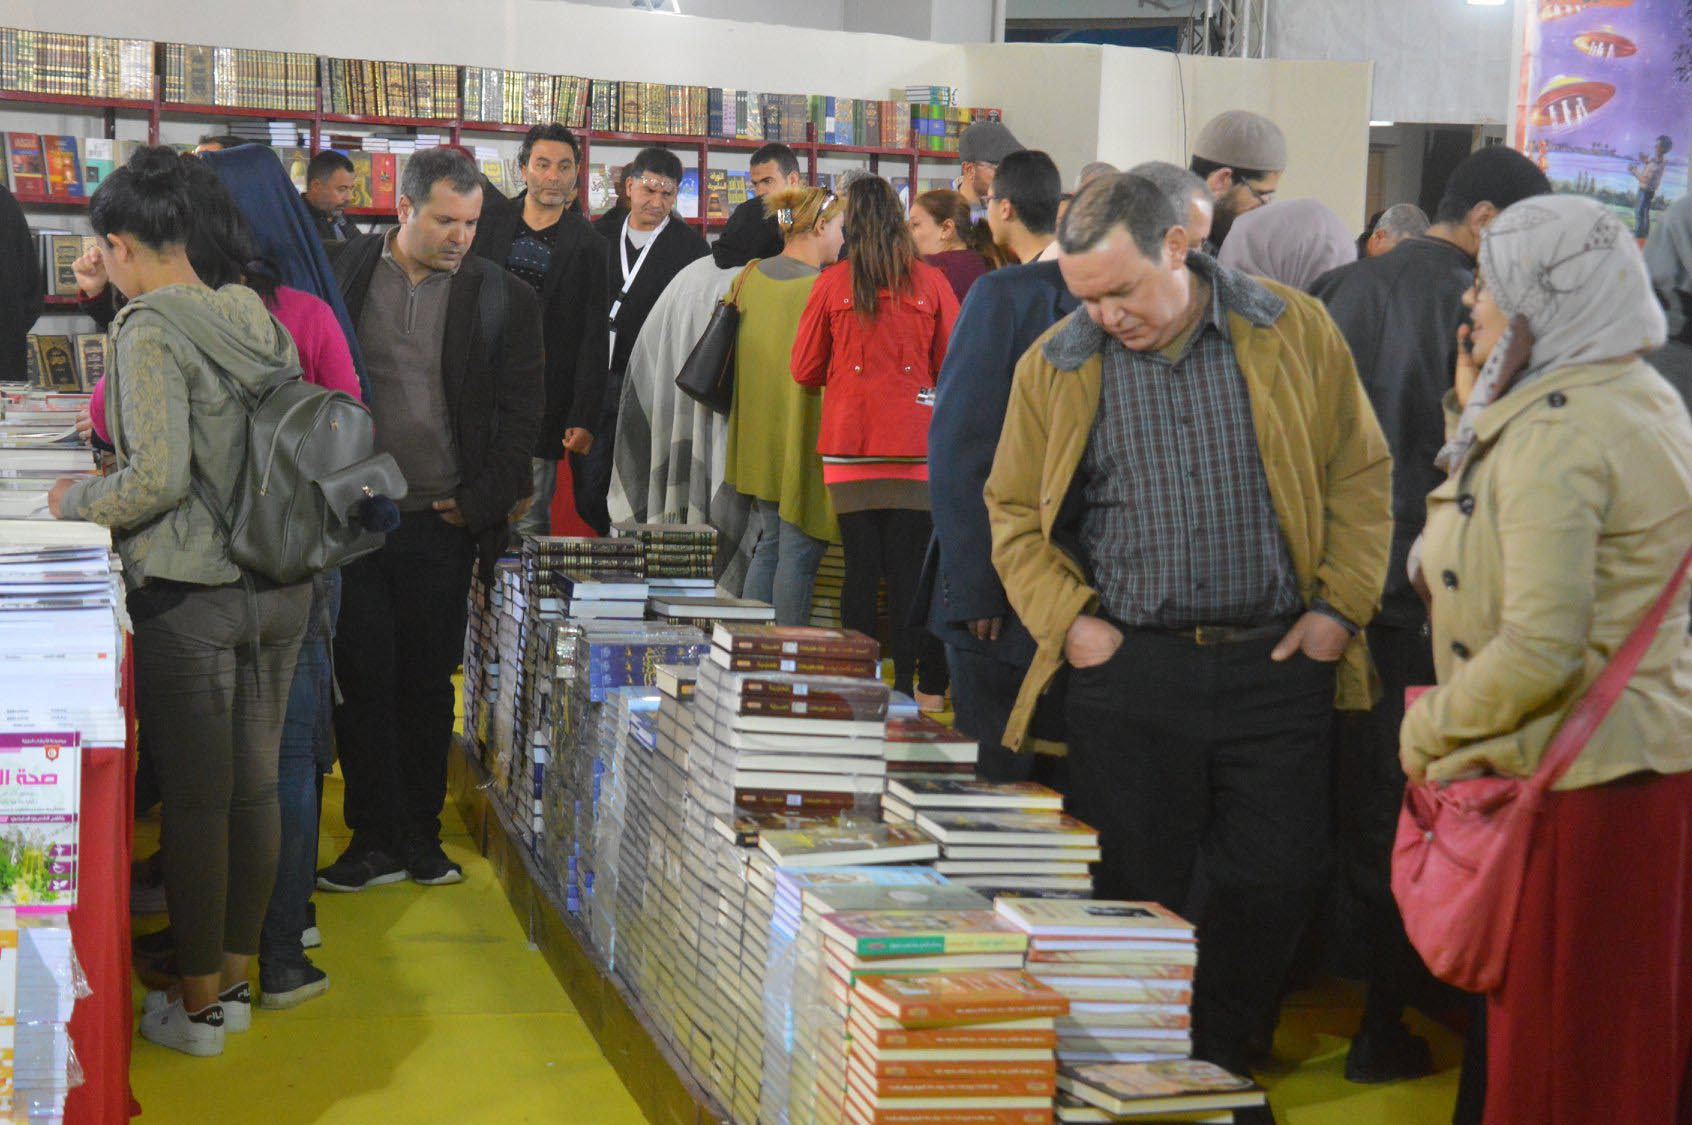 Visitors look at books at the 35th International Book Fair in Tunis, April 7. (Tunis International Book Fair)